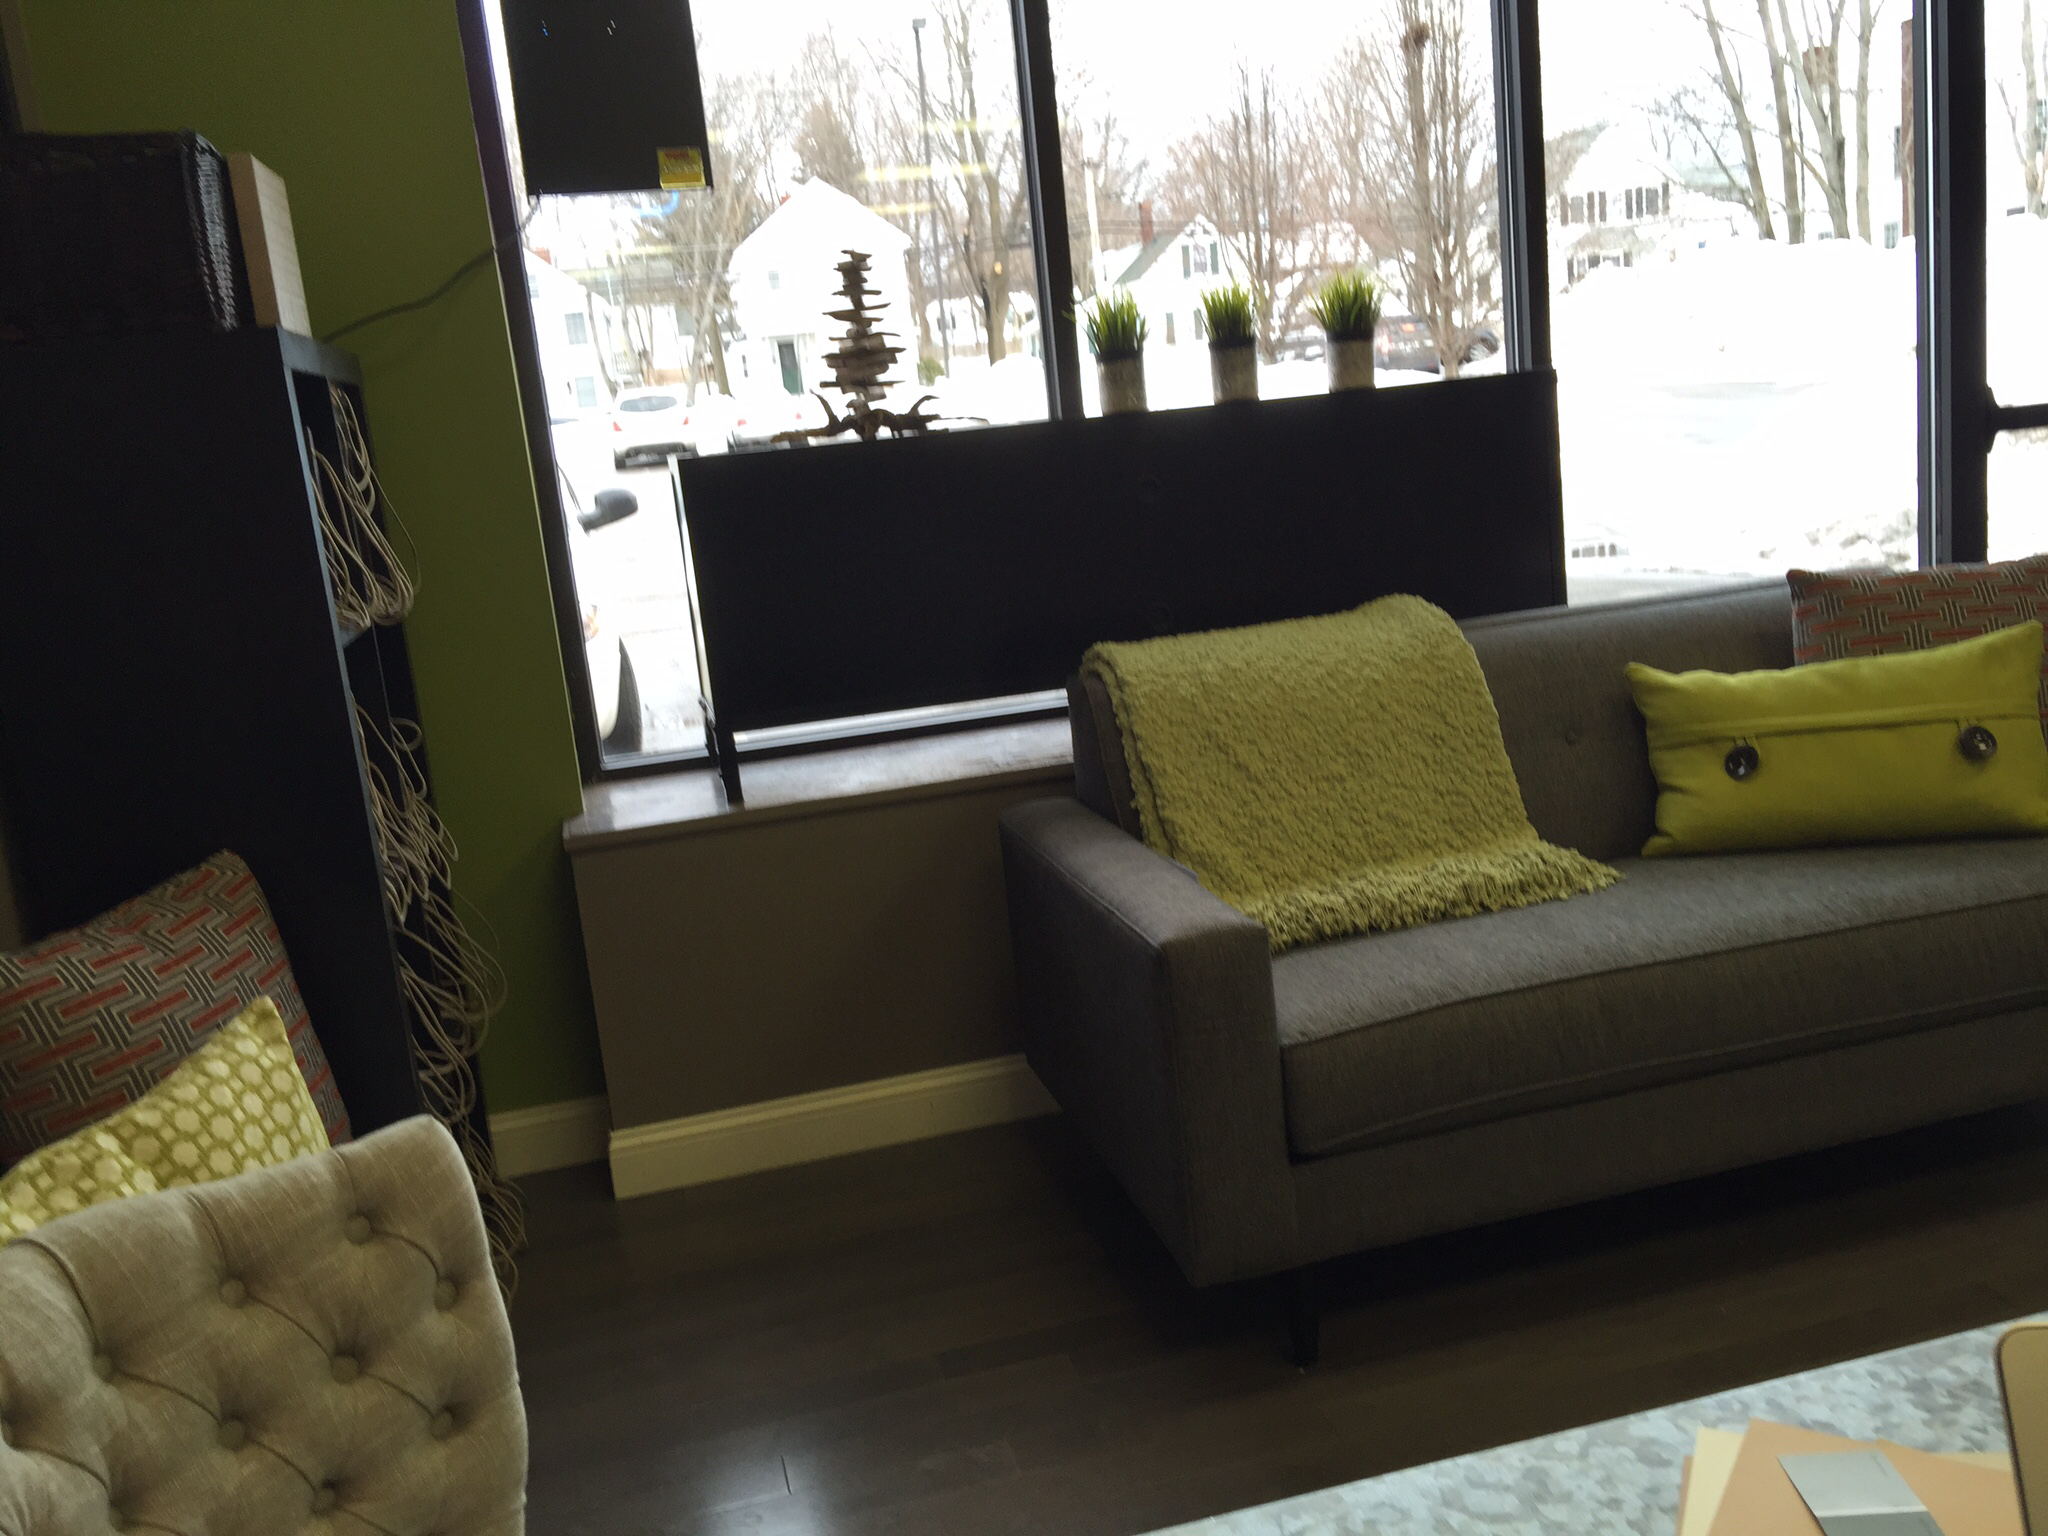 Interior Design Center Exeter Nh It 39 S More Than Just Paint Exeter Paint